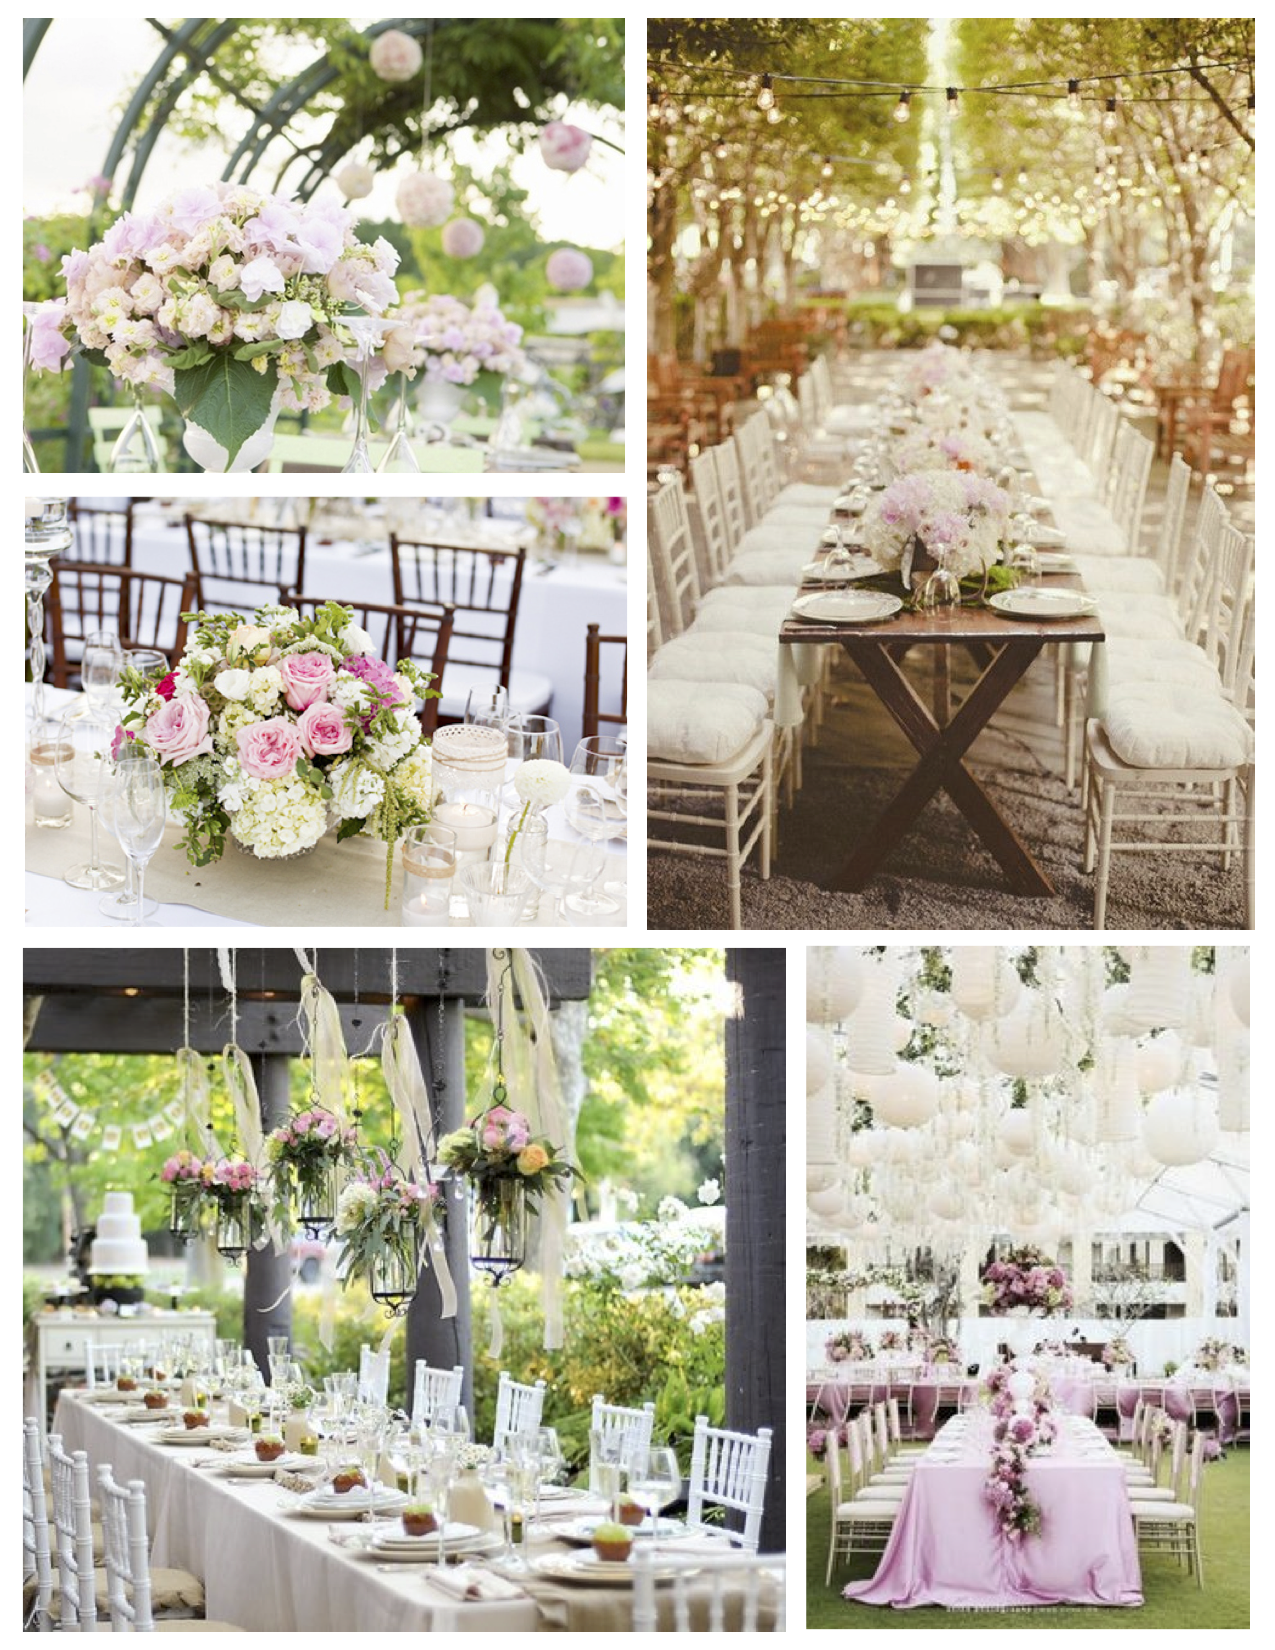 Wedded Bliss Under Nature's Canopy: The Outdoor Wedding